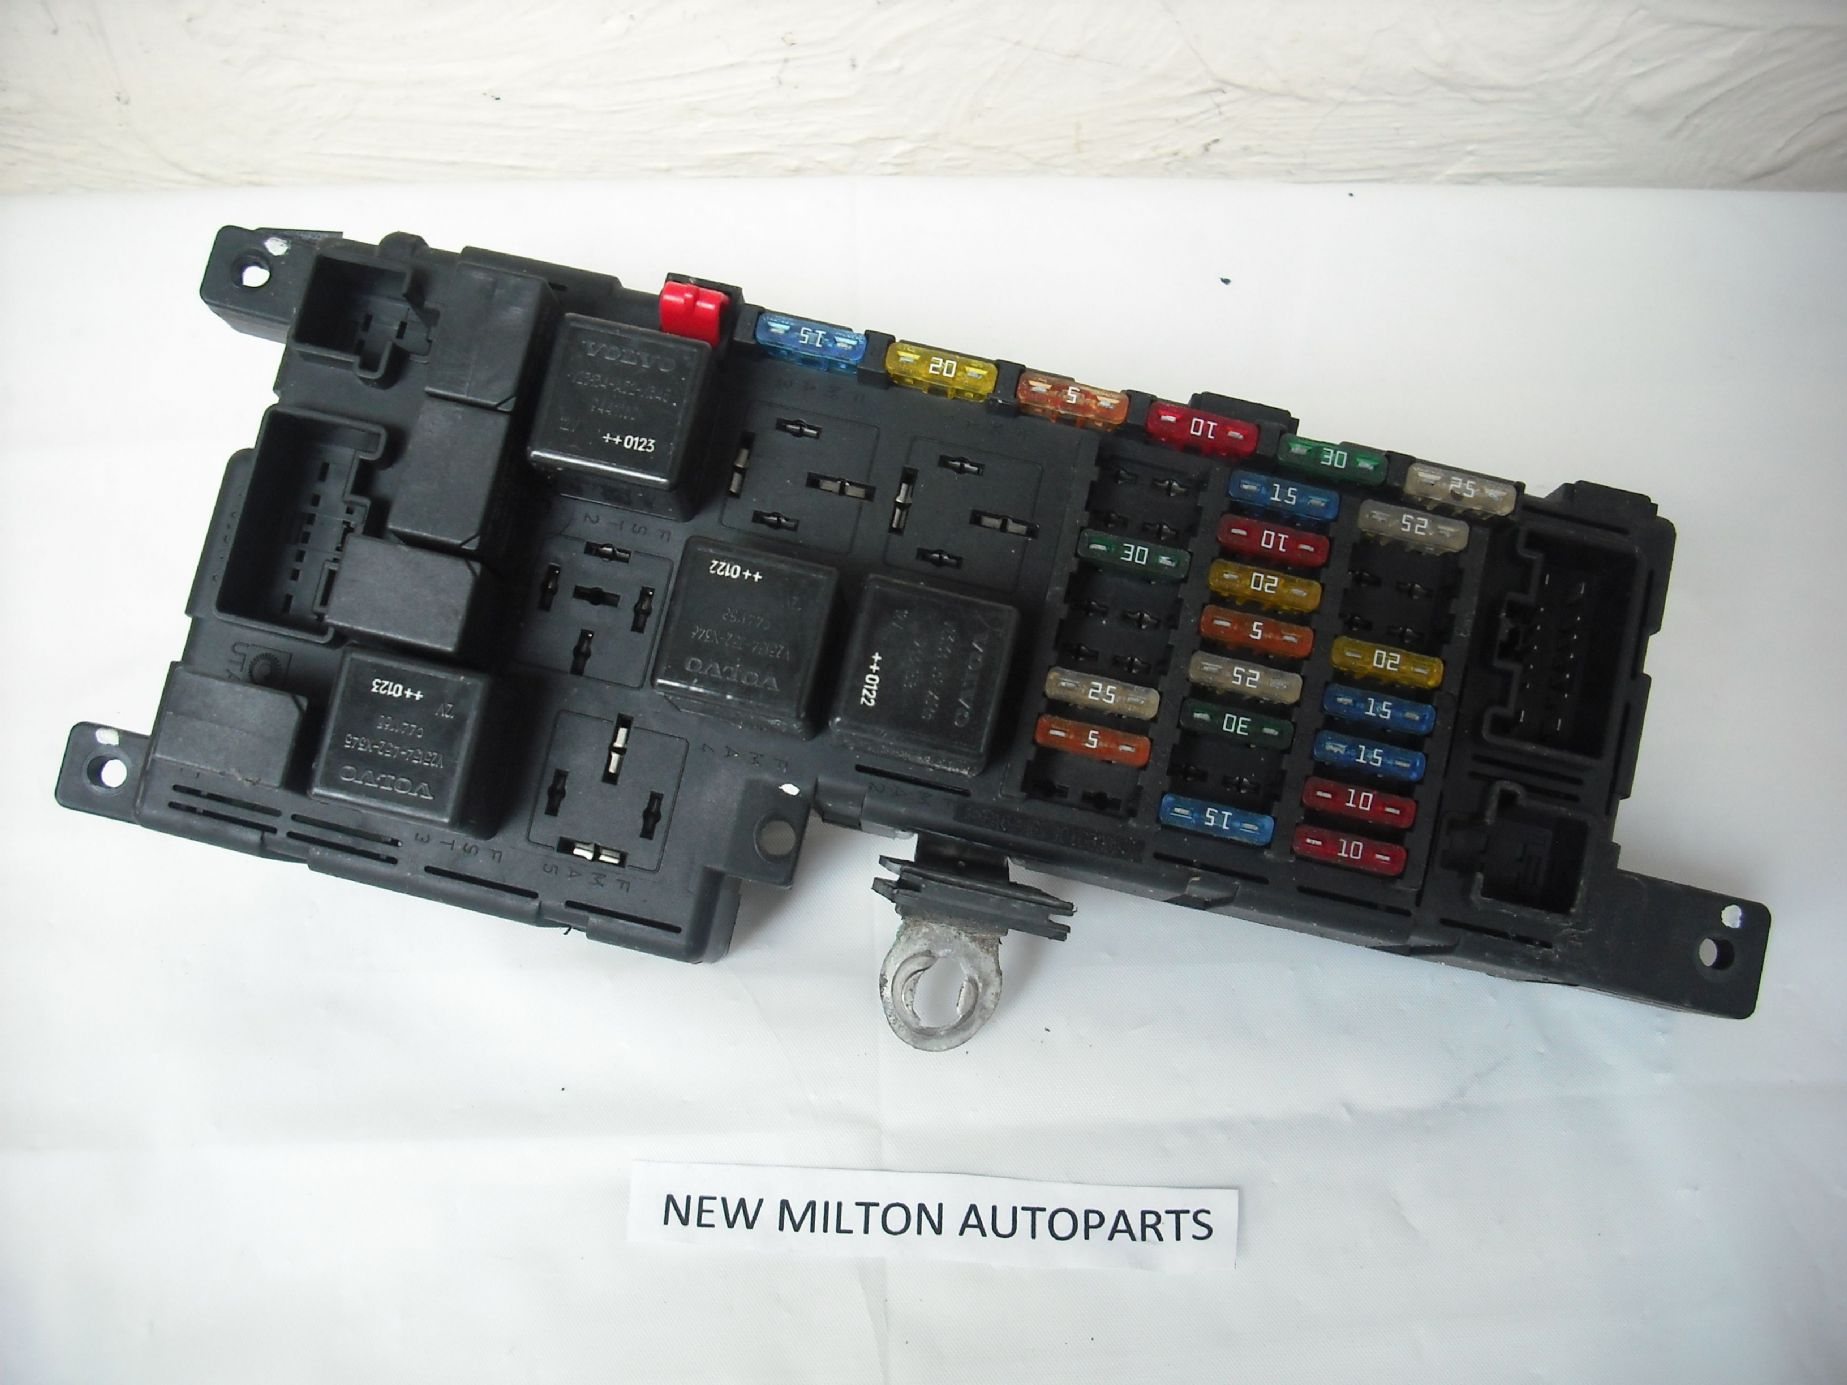 volvo s60 s80 v70 engine bay fuse box controller petrol 9452993 518322110 378 p volvo s60 s80 v70 engine bay fuse box controller petrol 9452993  at crackthecode.co